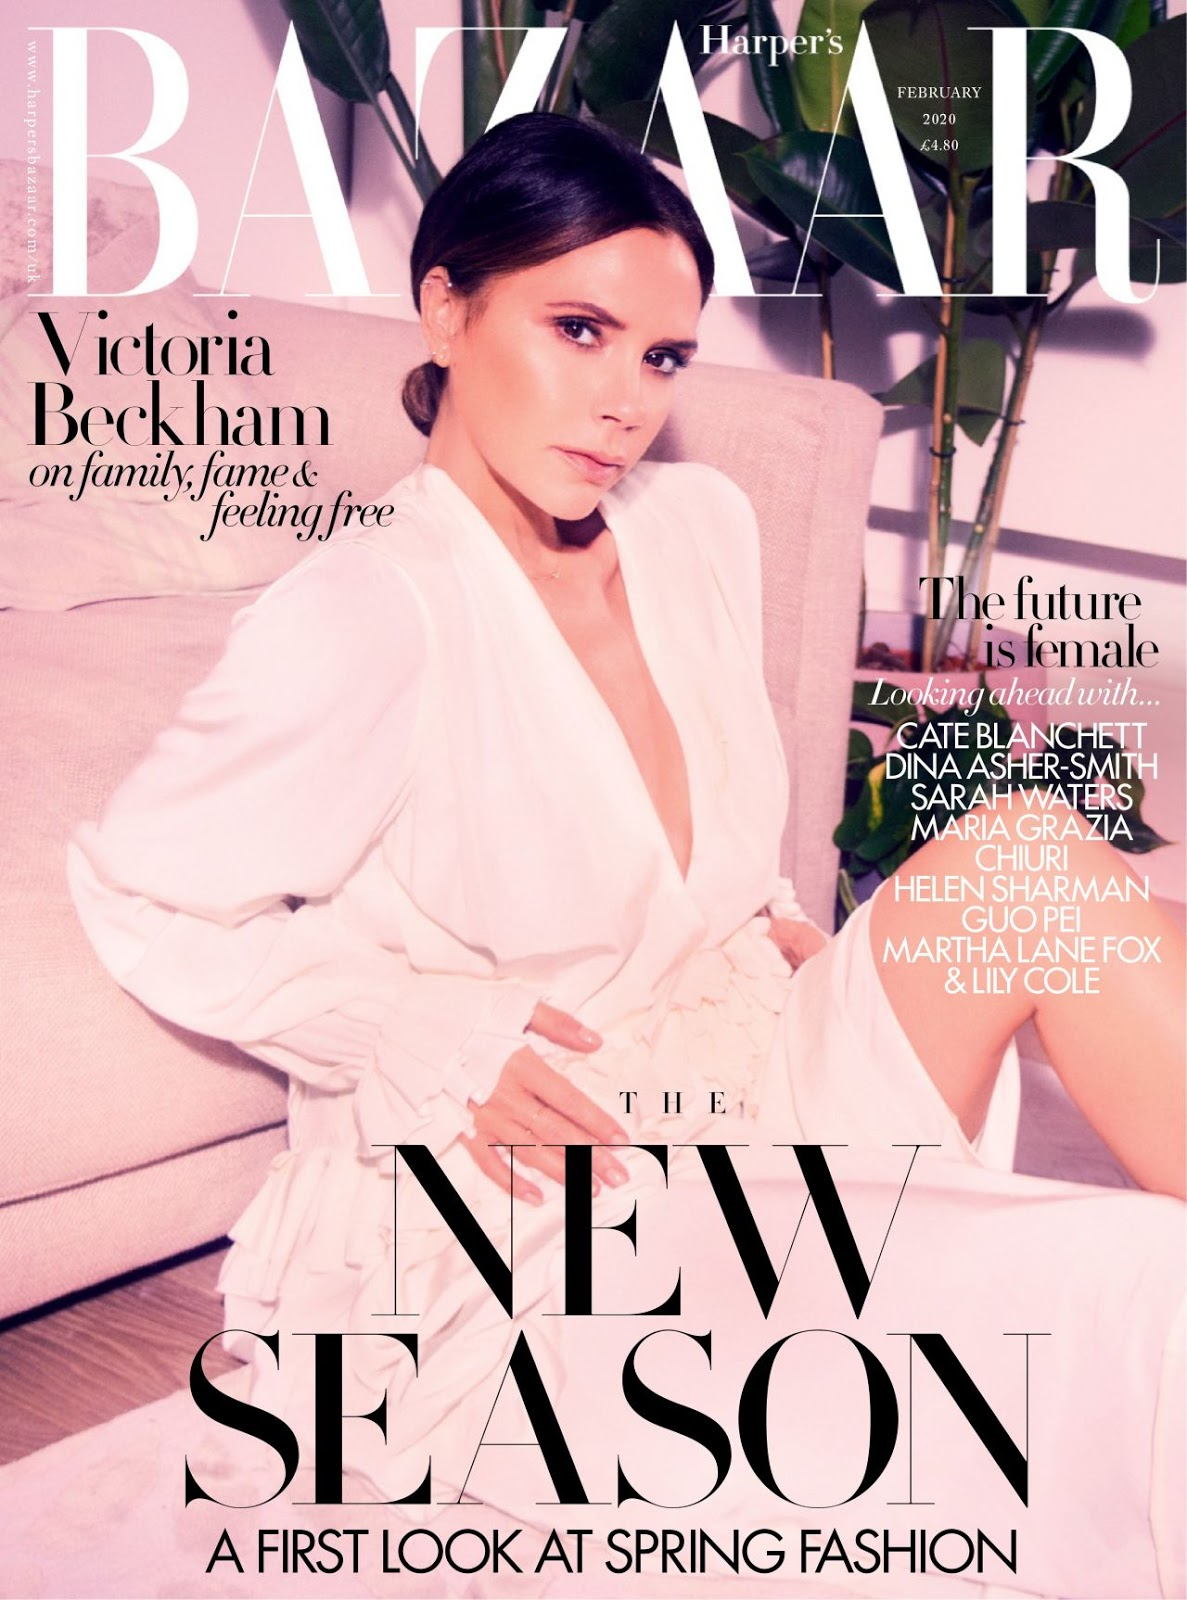 Victoria Beckham Covers Harper's Bazaar UK February 2020